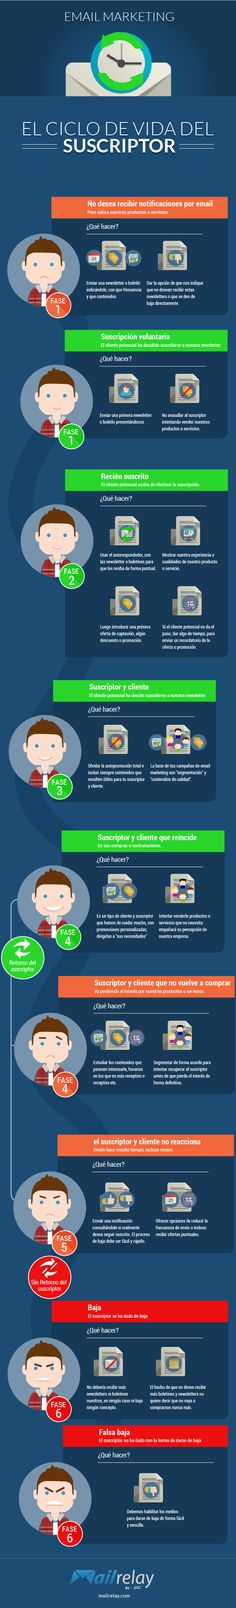 Email marketing: el ciclo de vida del suscriptor #infografia #infographic #marketing